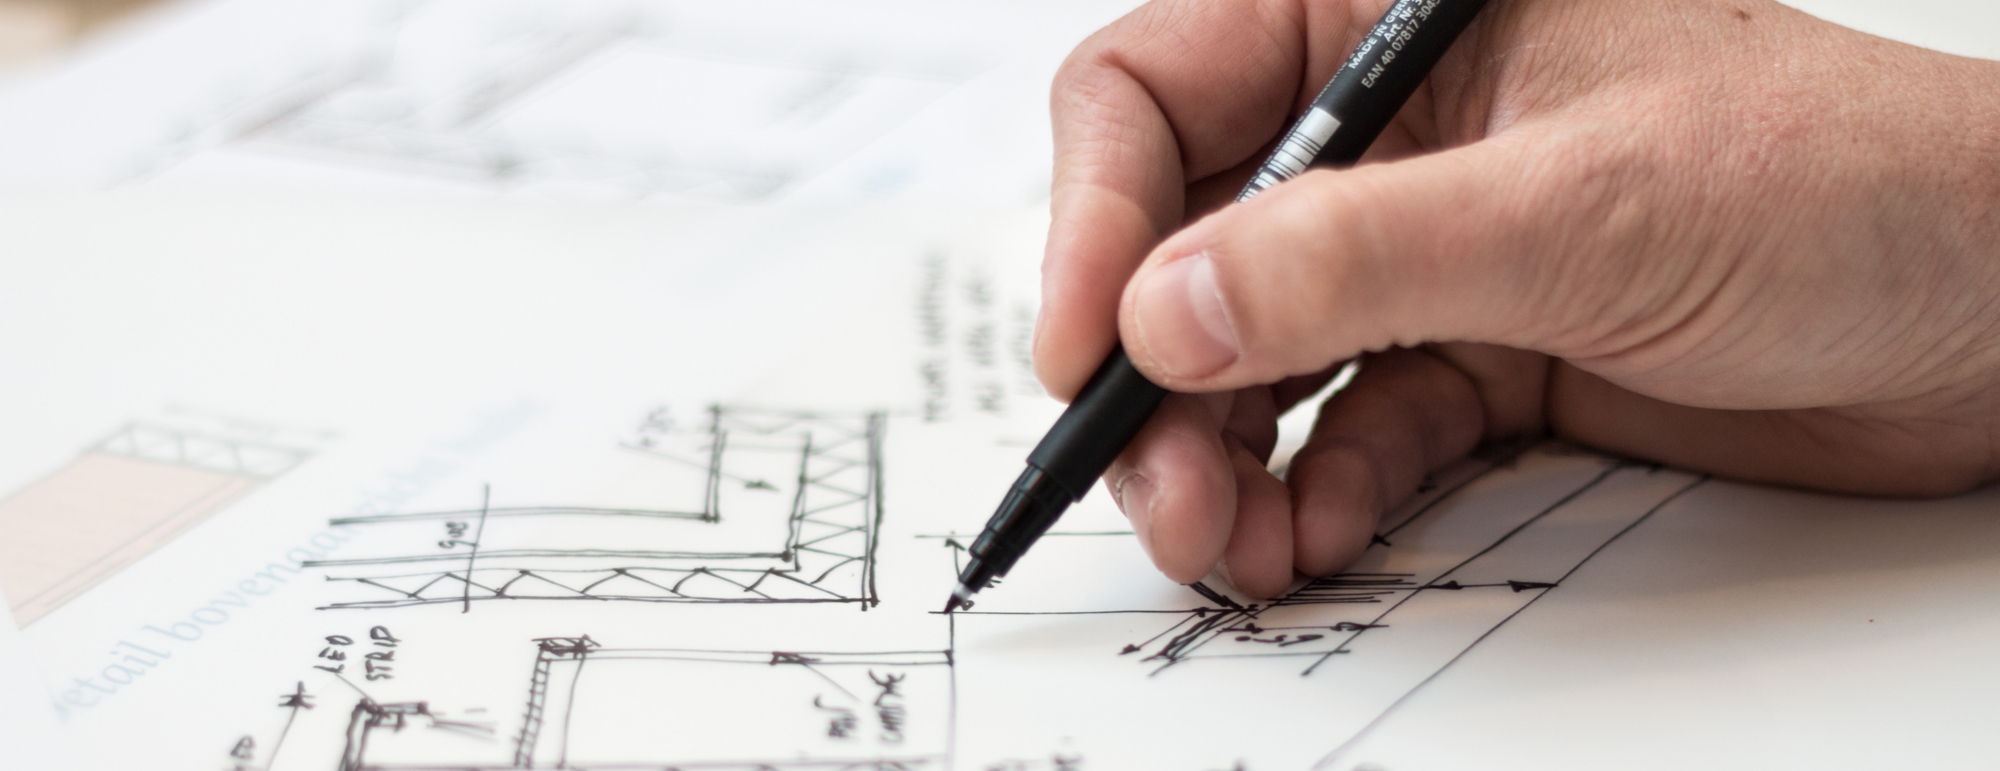 someone working on a building blueprint